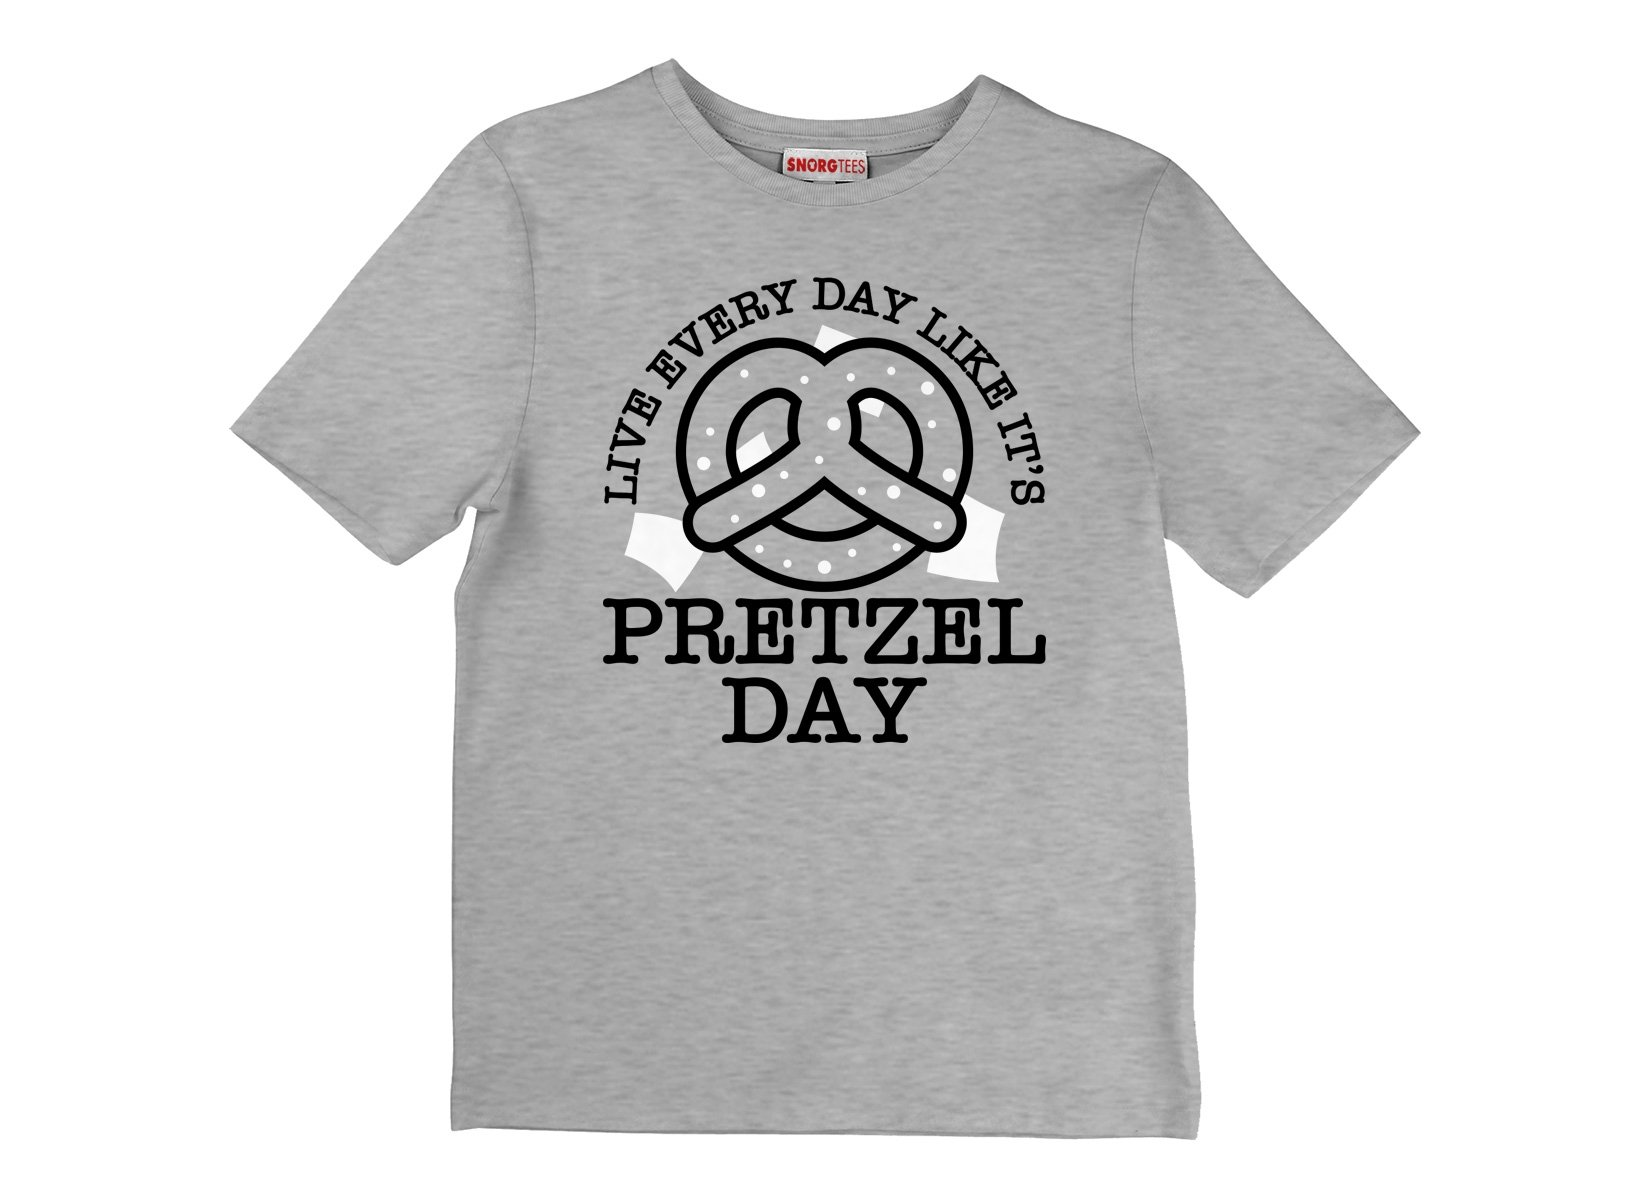 Live Every Day Like It's Pretzel Day on Kids T-Shirt